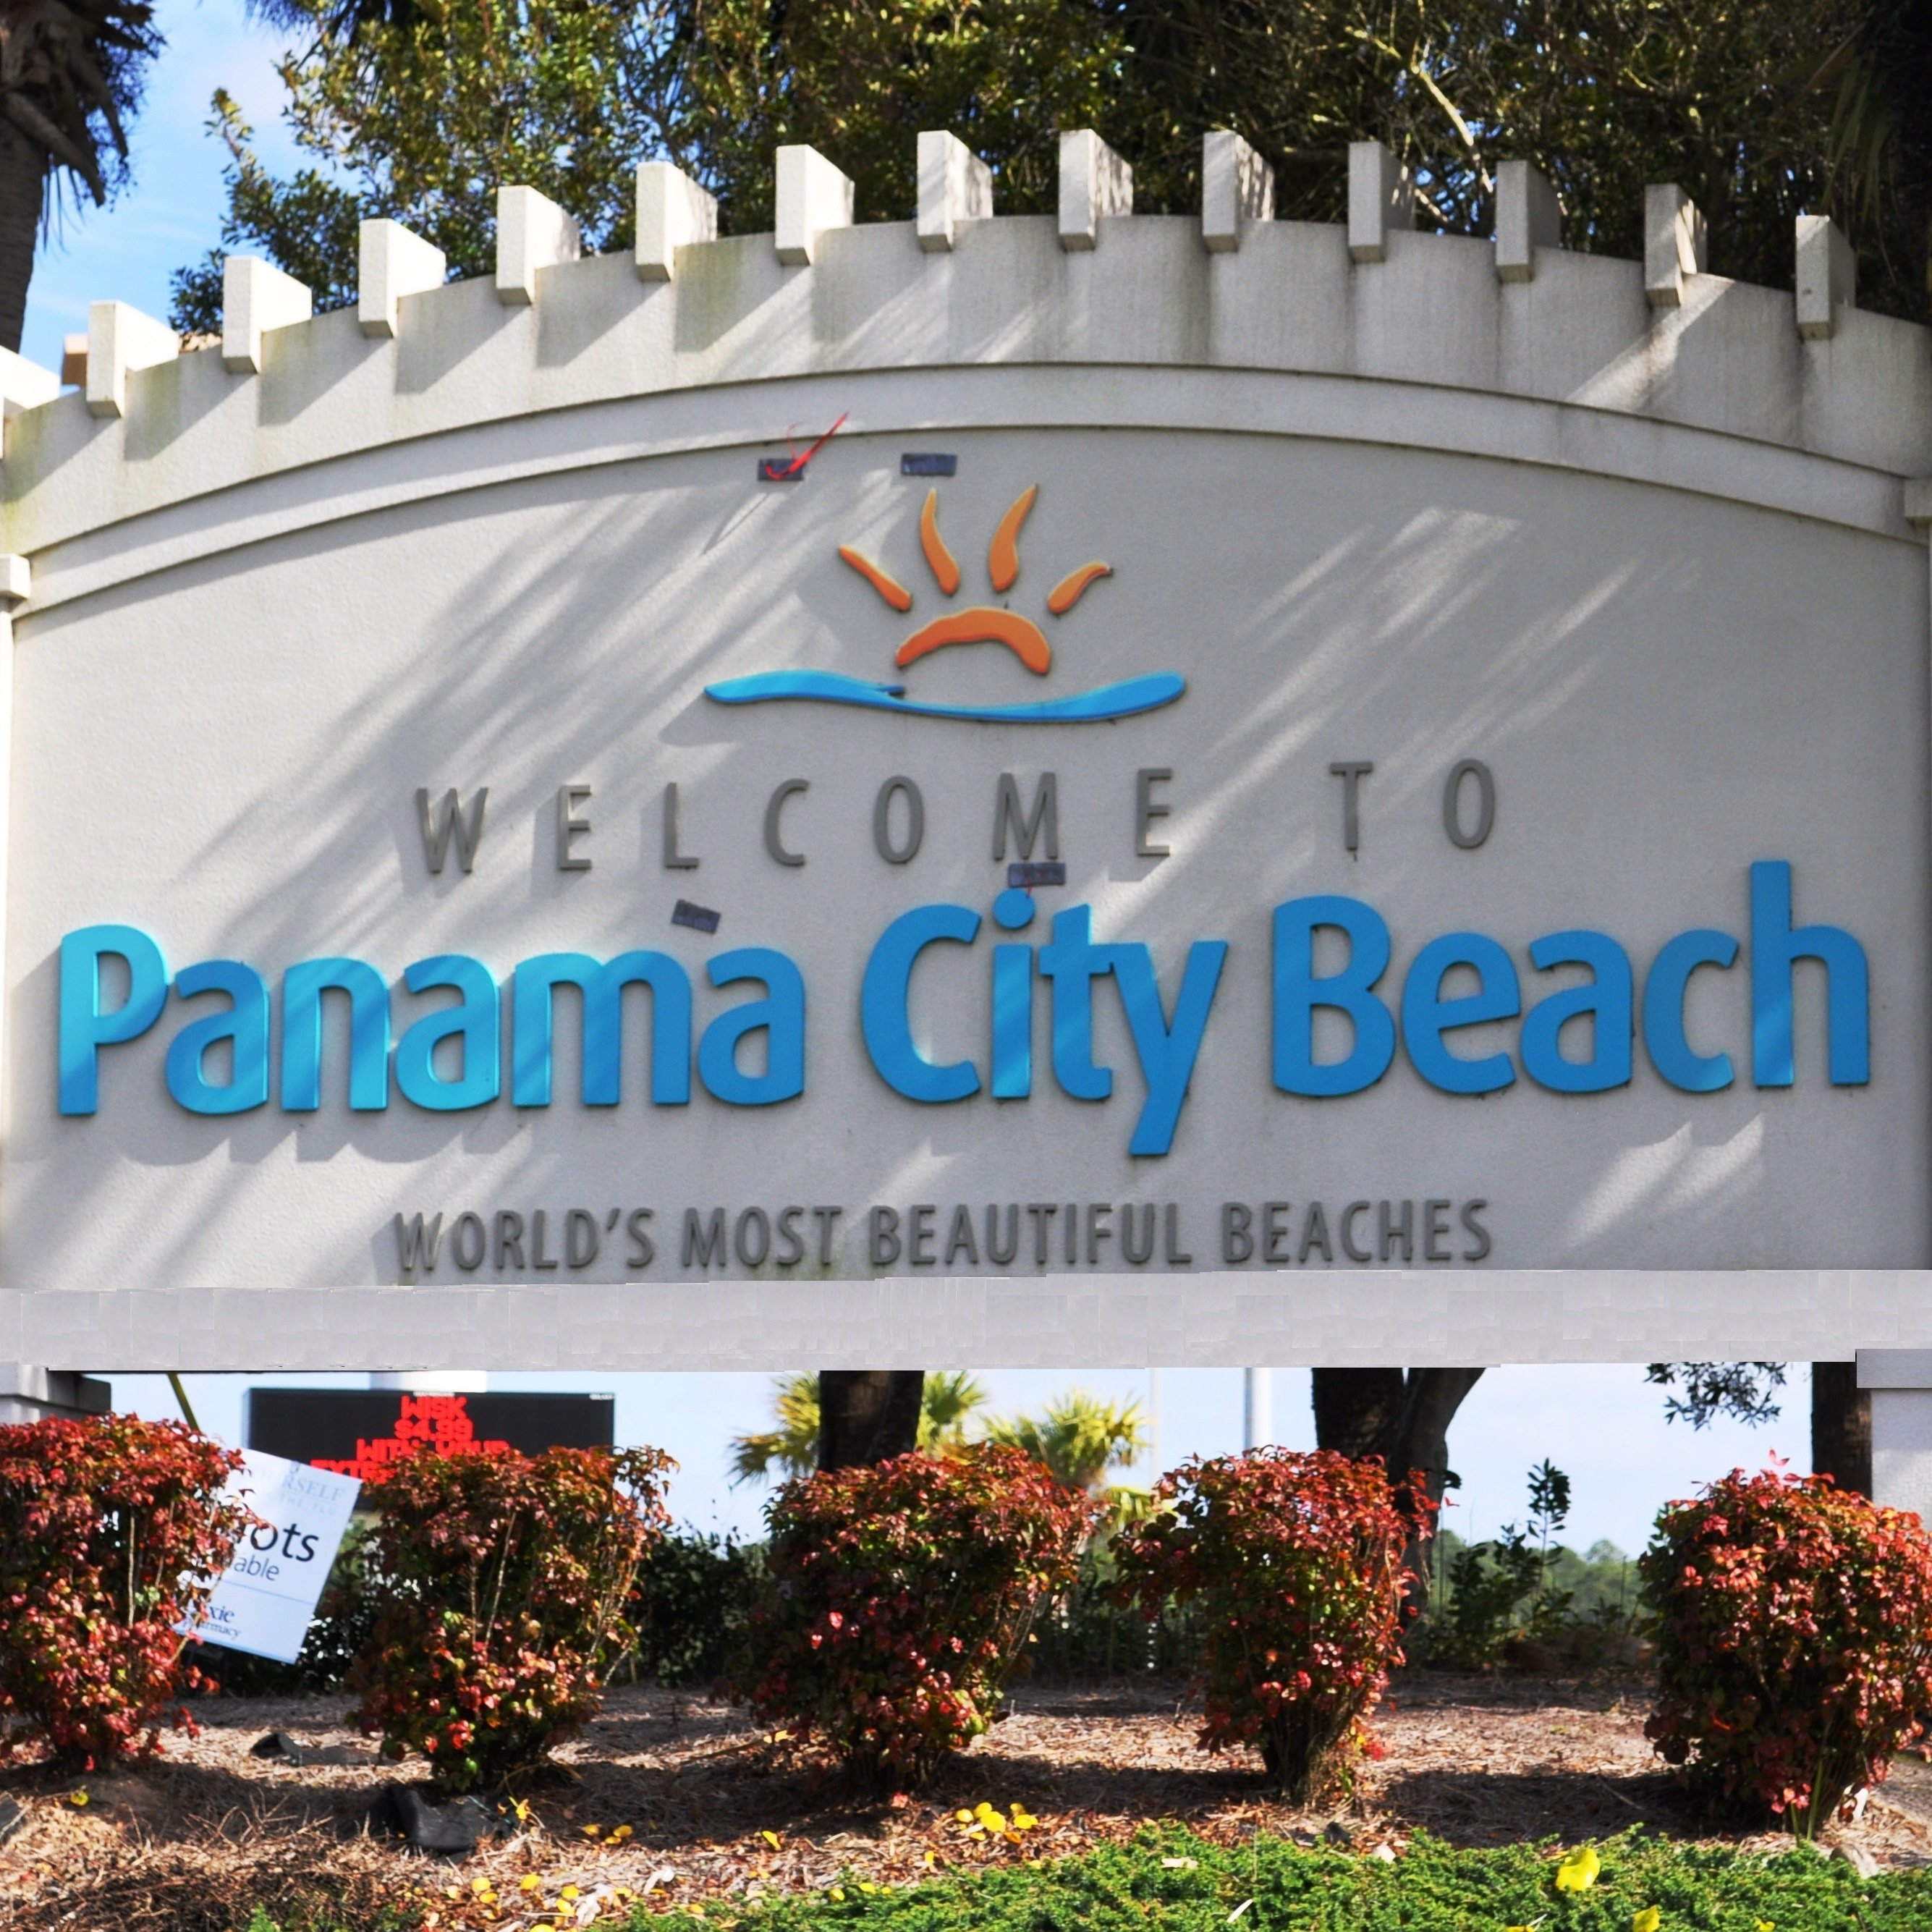 Tidewater Address 16819 Front Beach as well Celadon Beach Resort Condo Floor Plans Panama City Beach 95 as well P3879534 as well Ramsgate Harbour further Shoreline Towers 3042. on panama city beach condo rentals